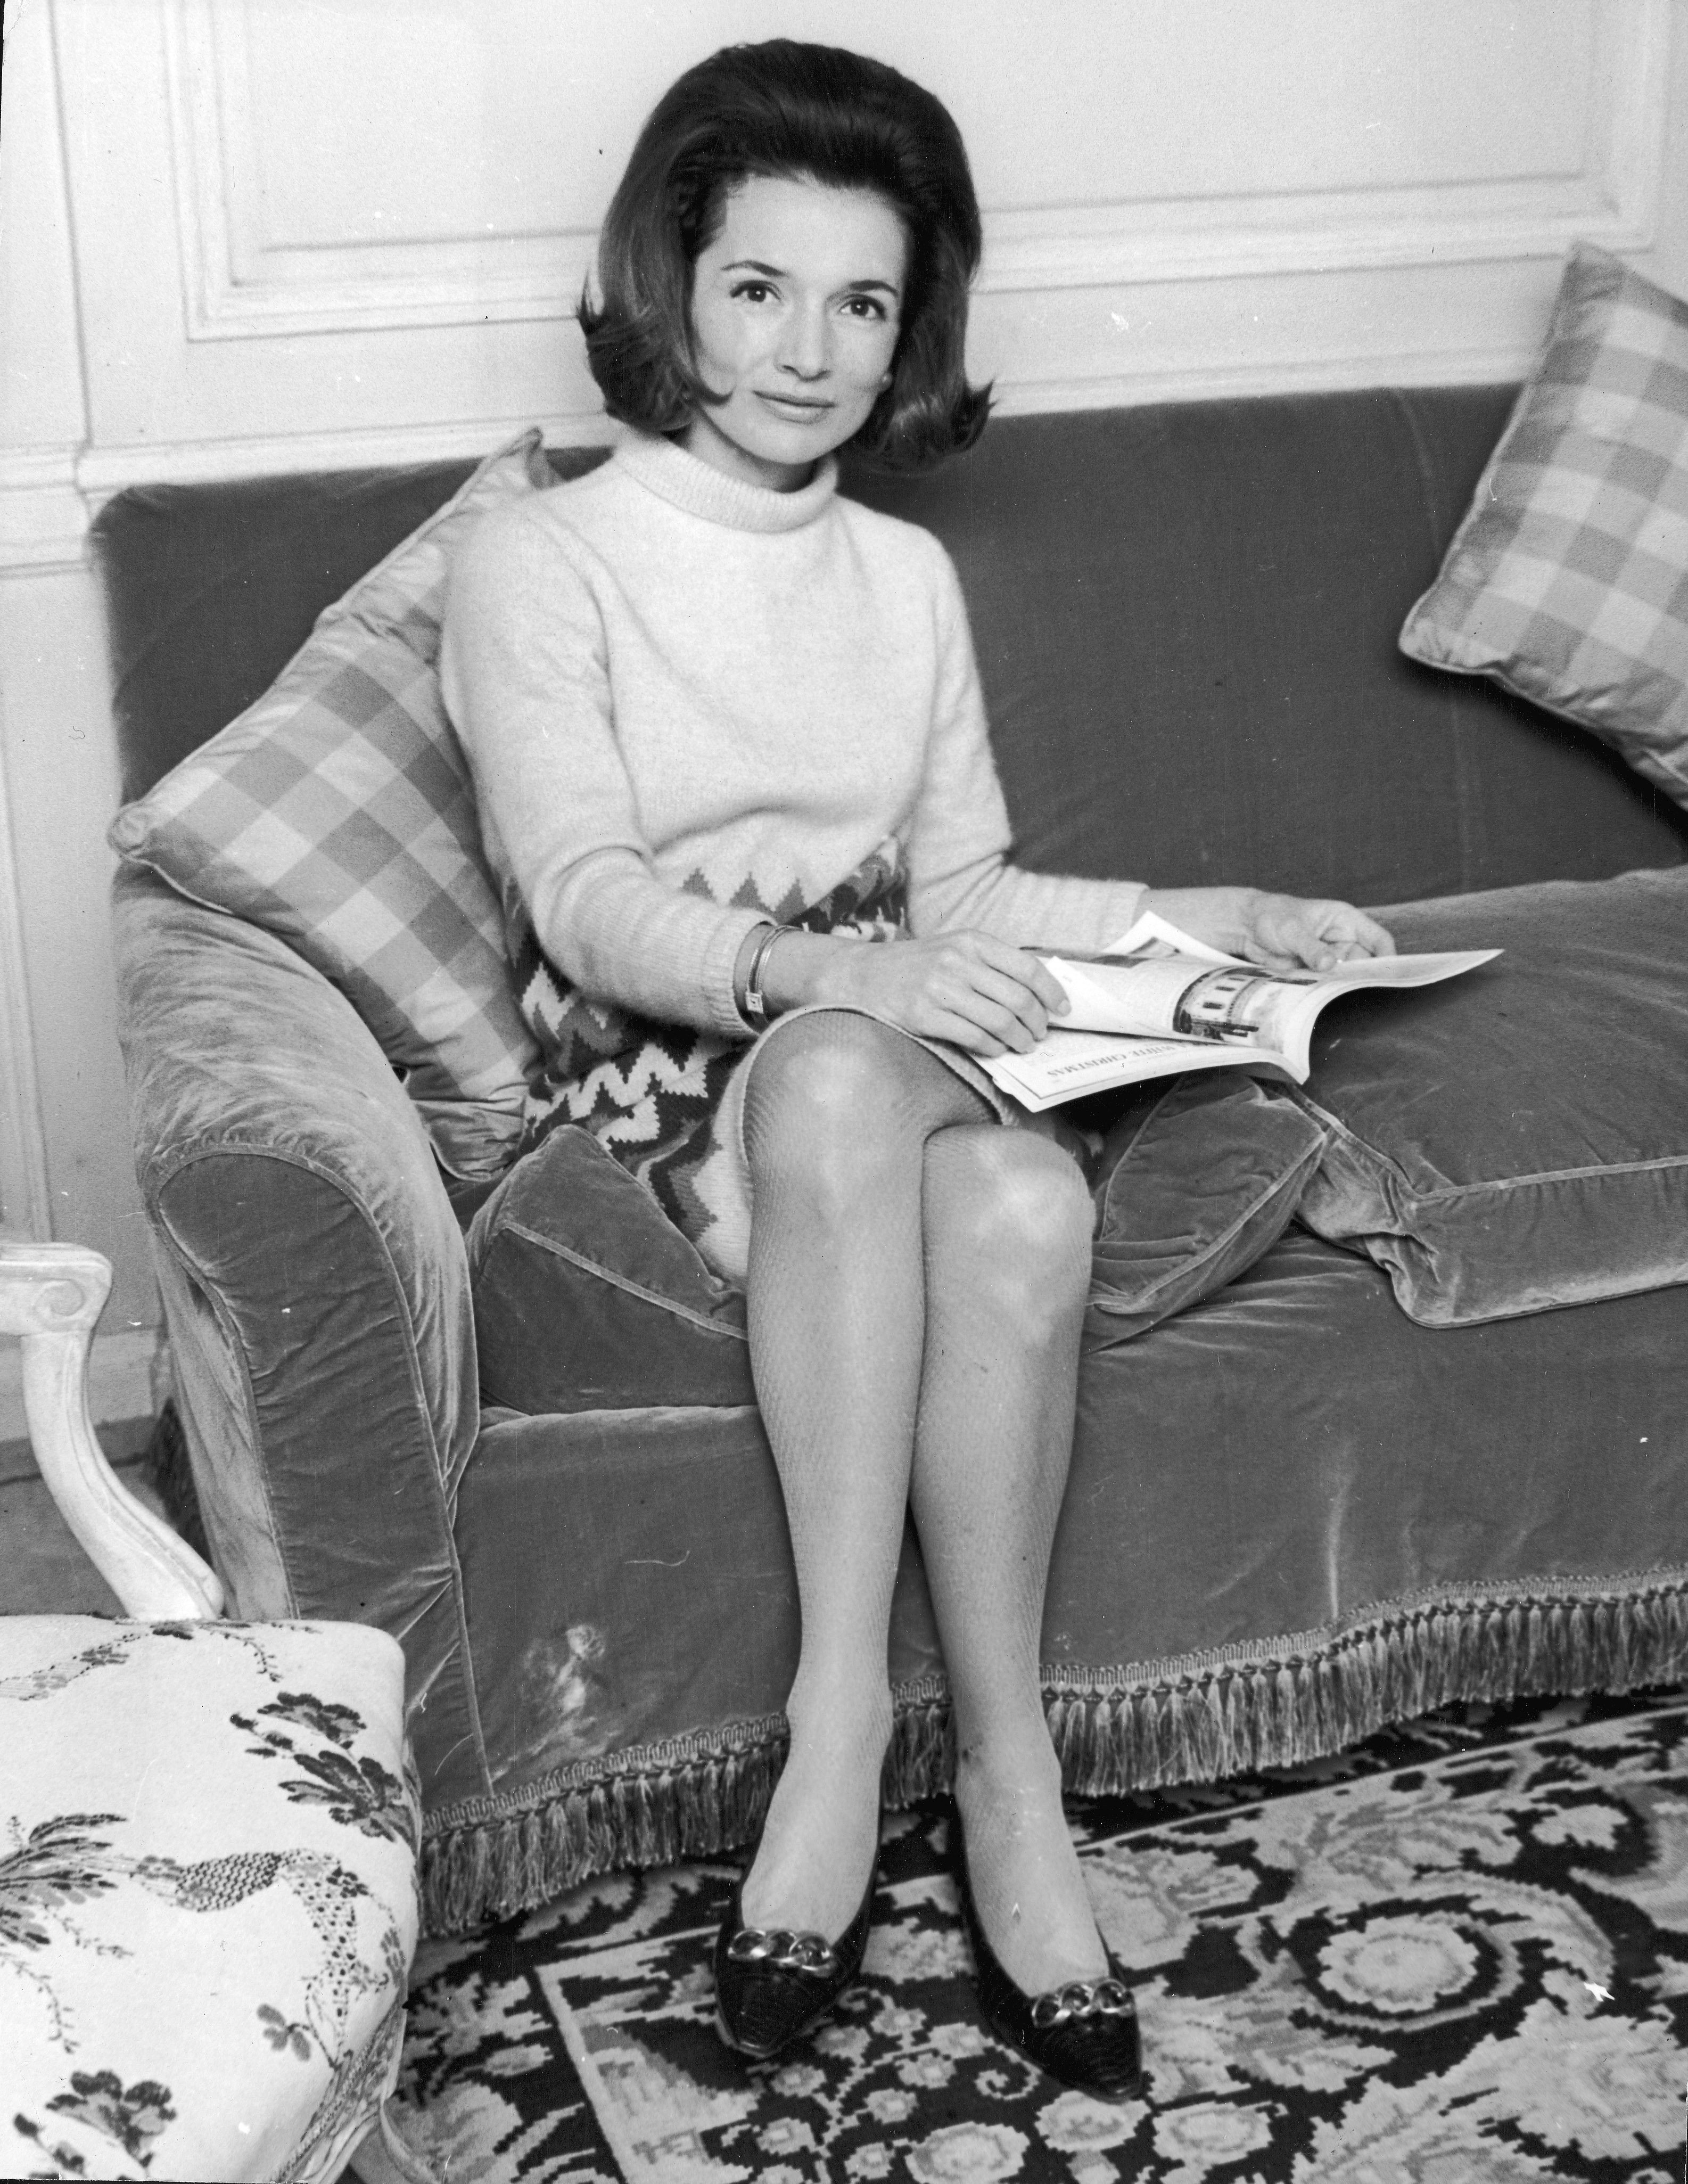 Lee Radziwill sitting on a couch in the 60s | Photo: Getty Images